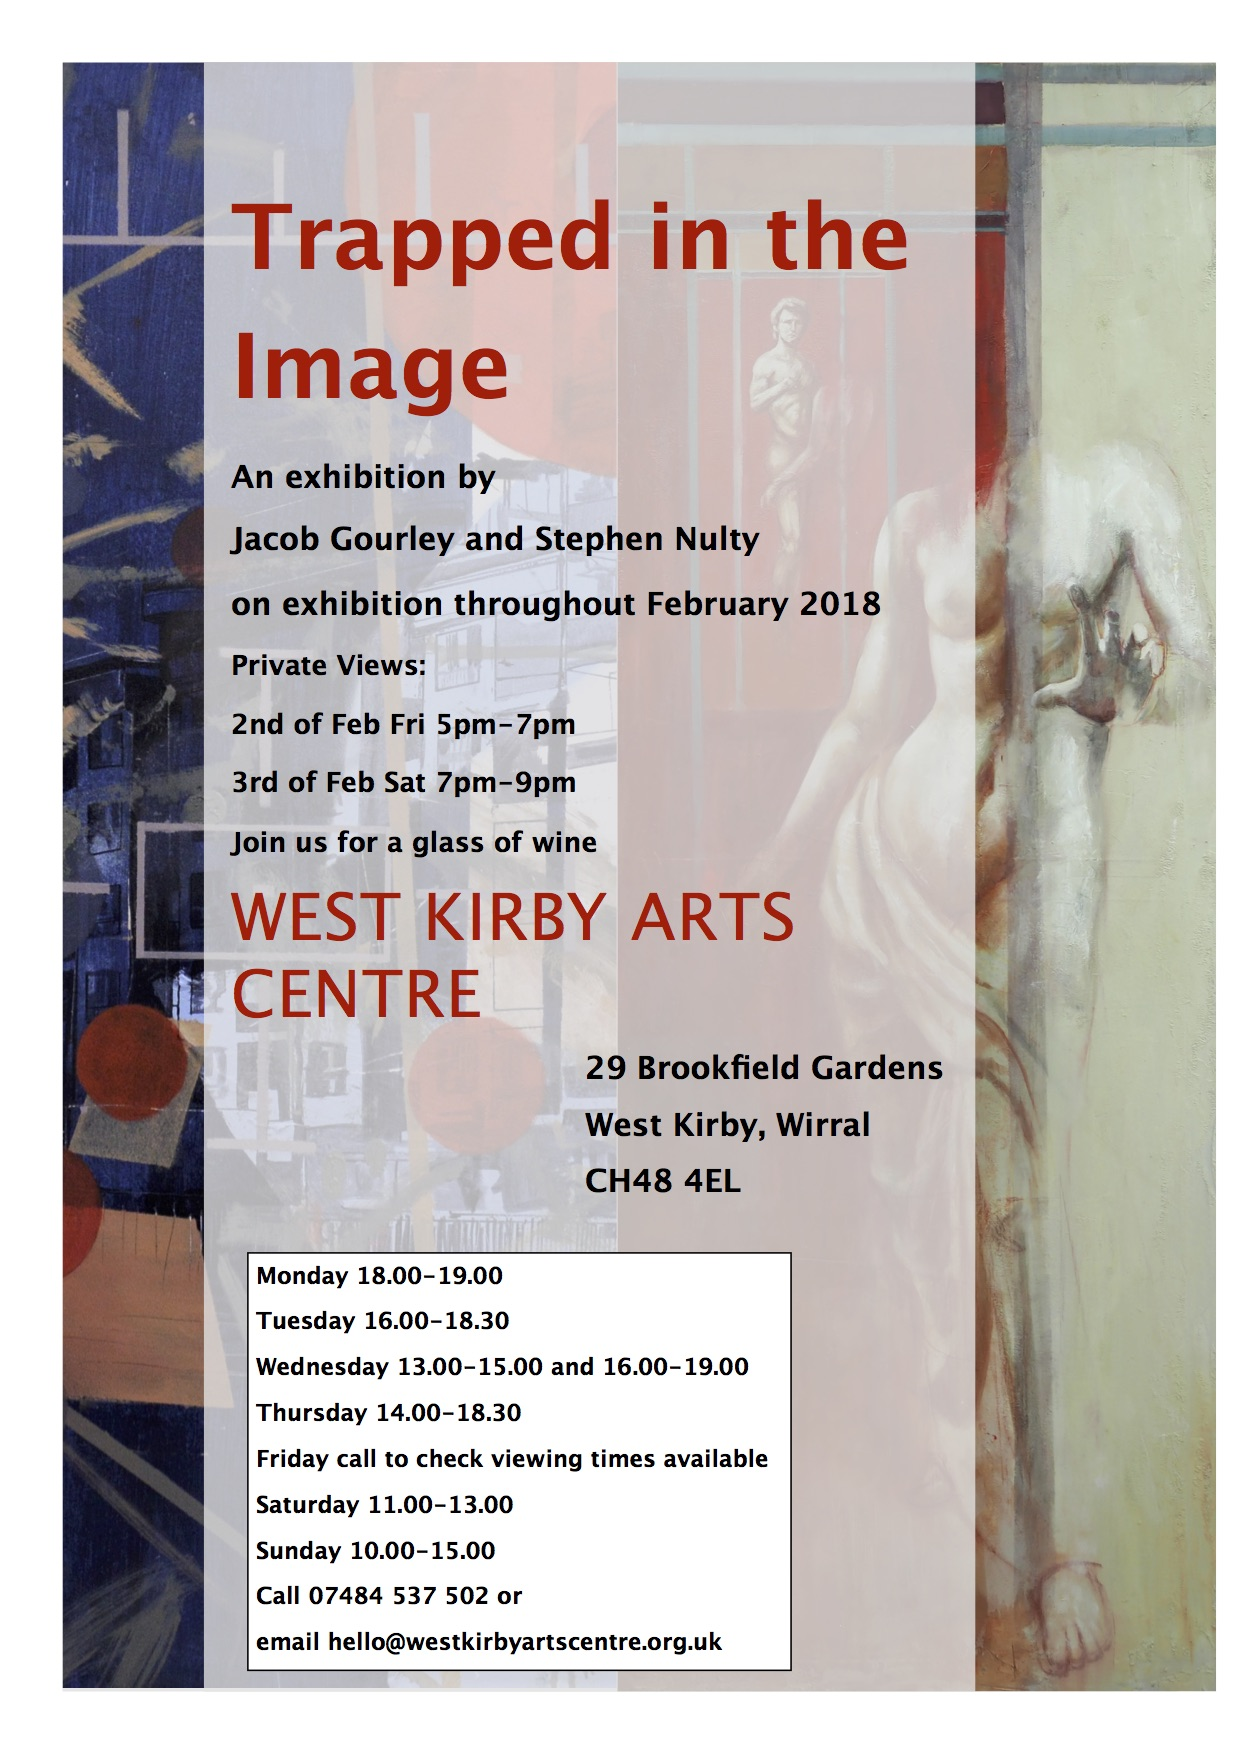 West Kirby Arts Centre: Trapped in the Image